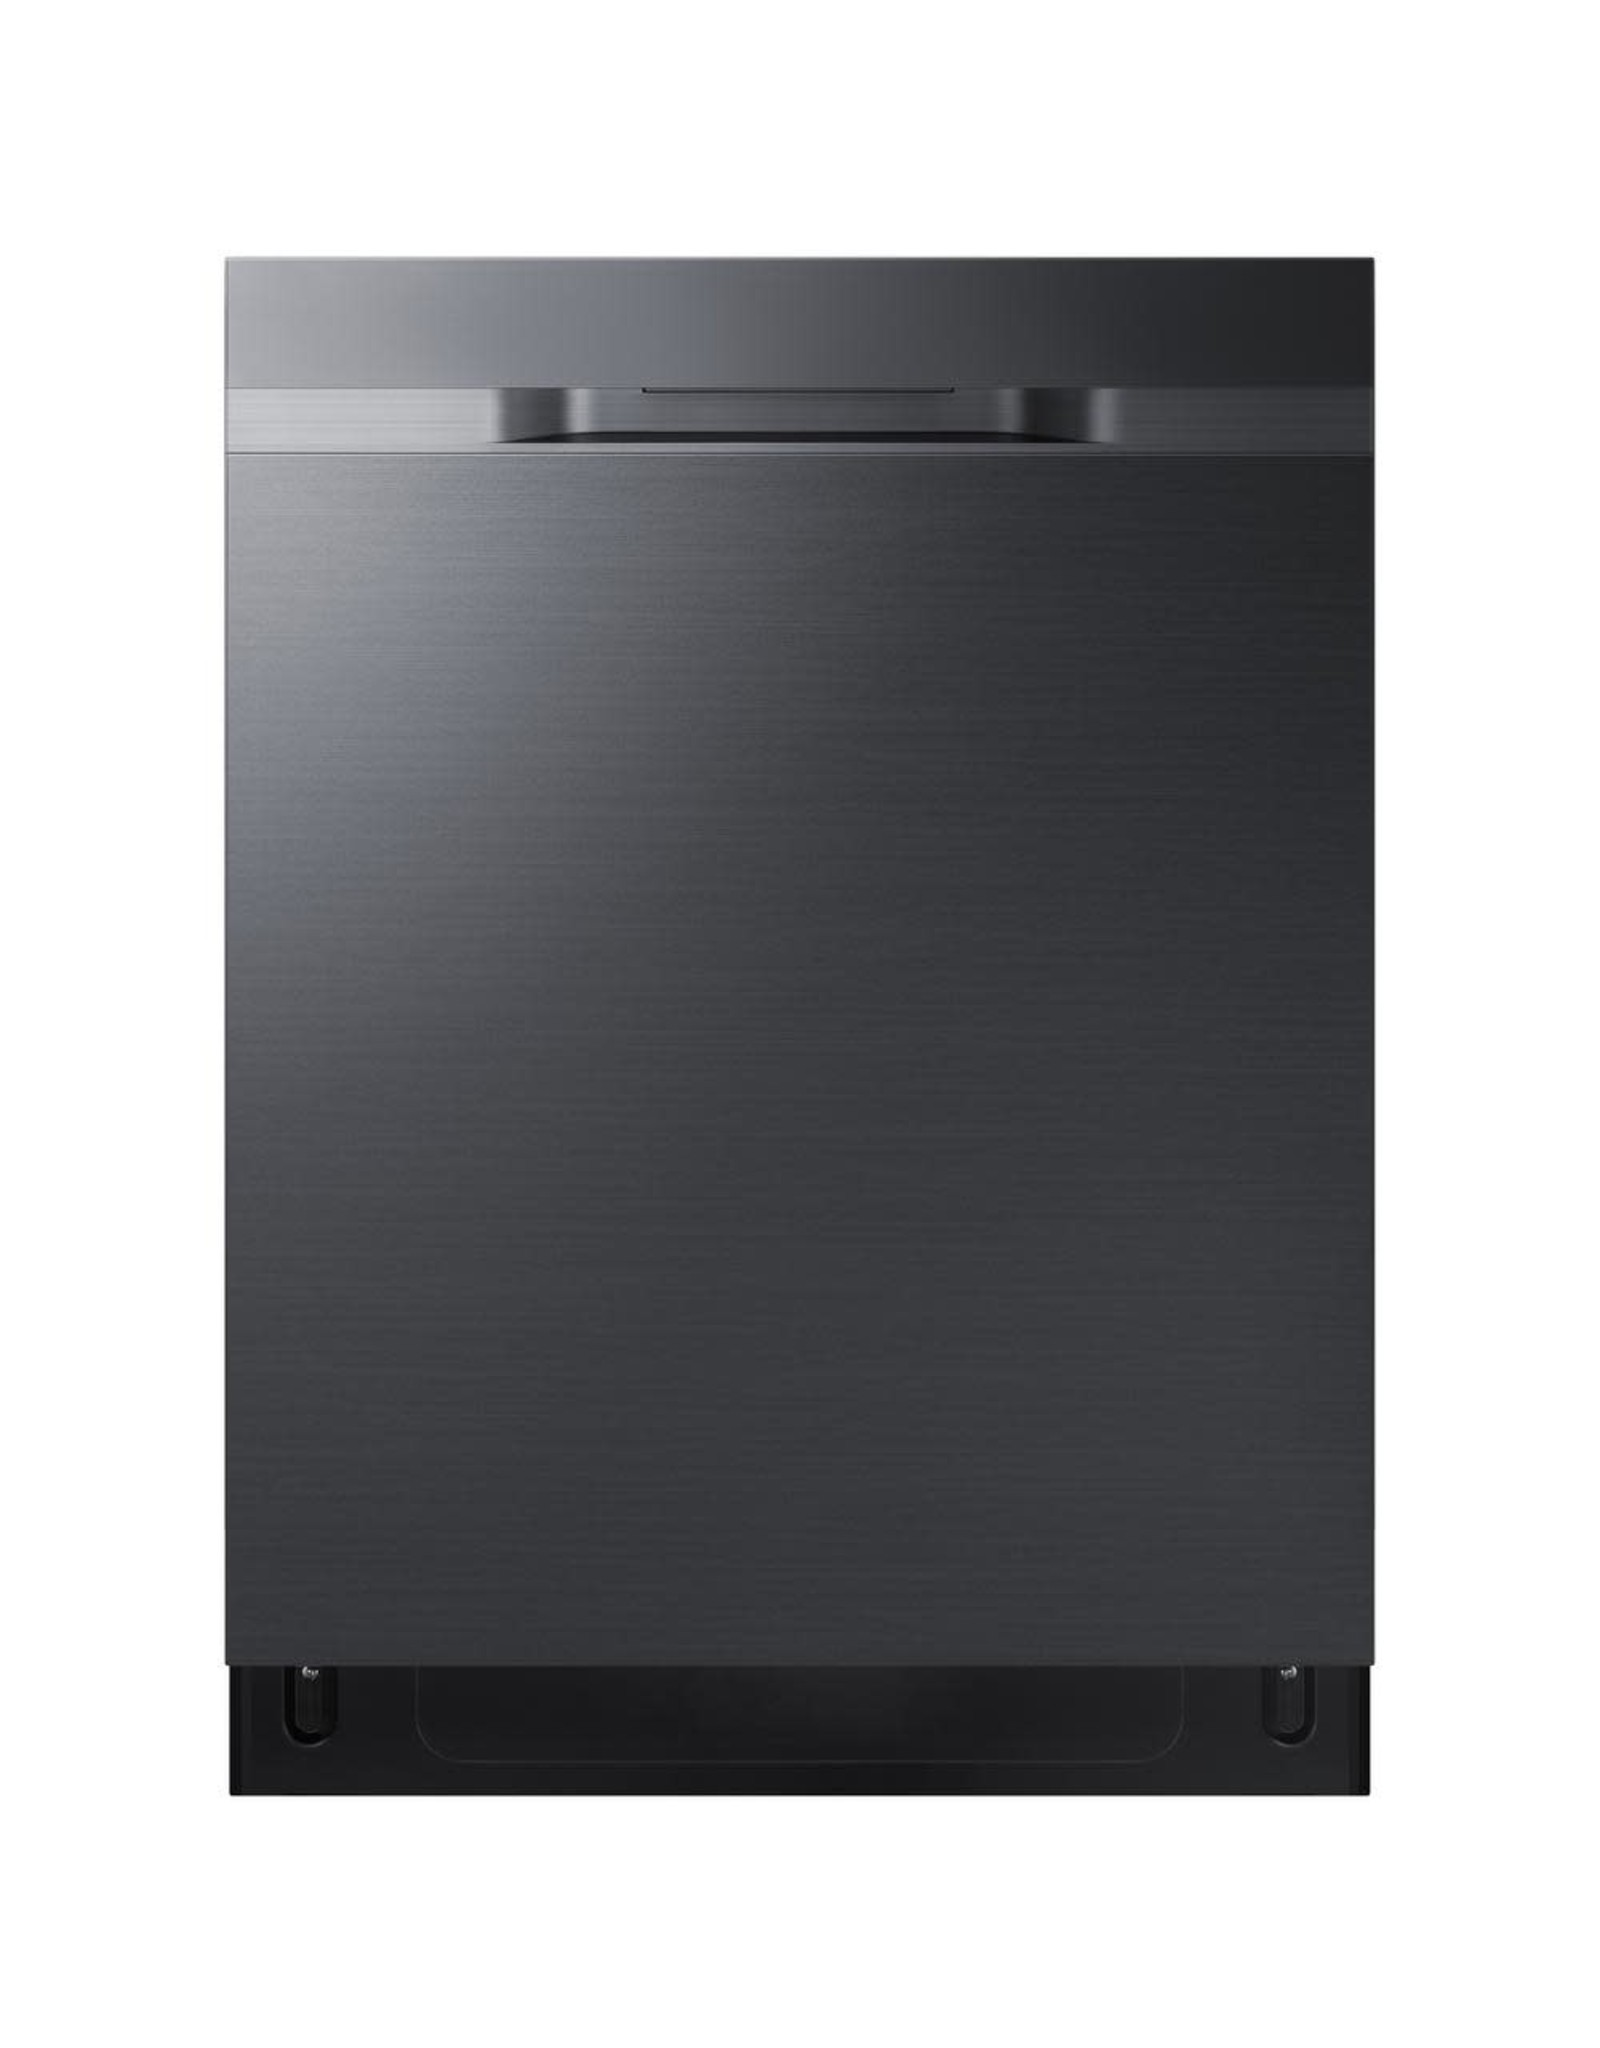 SAMSUNG DW80R5060UG Samsung 24 in Top Control StormWash Tall Tub Dishwasher in Fingerprint Resistant Black Stainless with AutoRelease Dry, 48 dBA